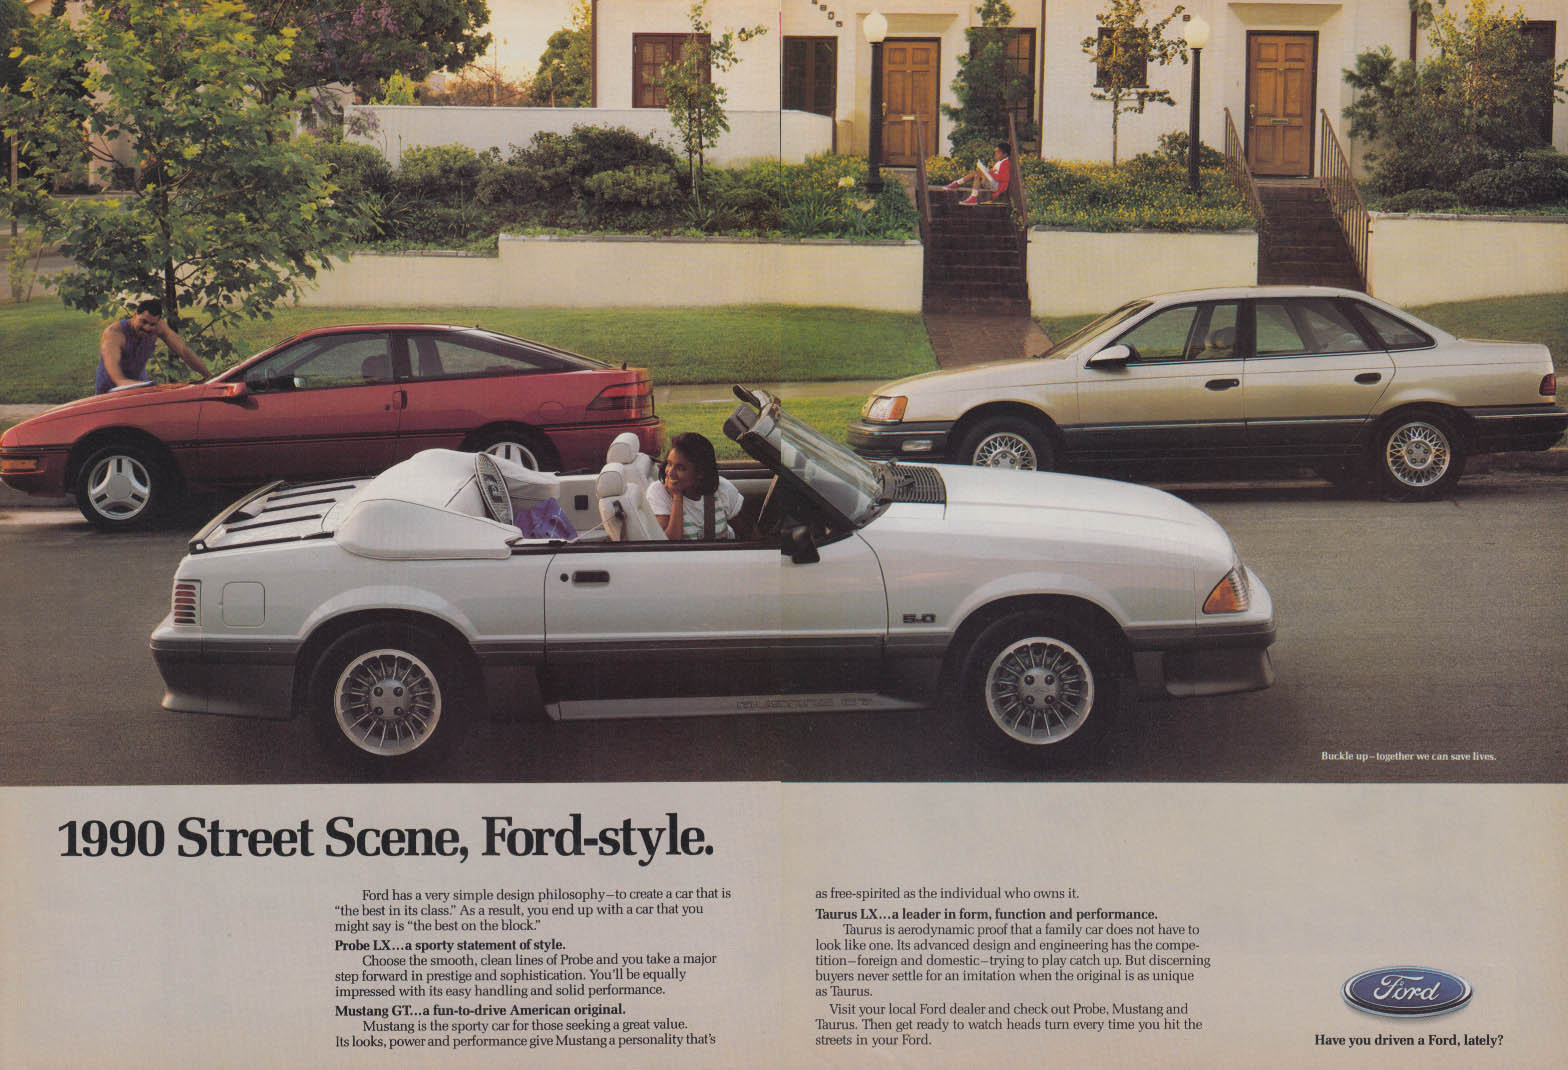 Image for 1990 Street Scene, Ford-style - Mustang GT Probe LX Taurus LX ad 1990